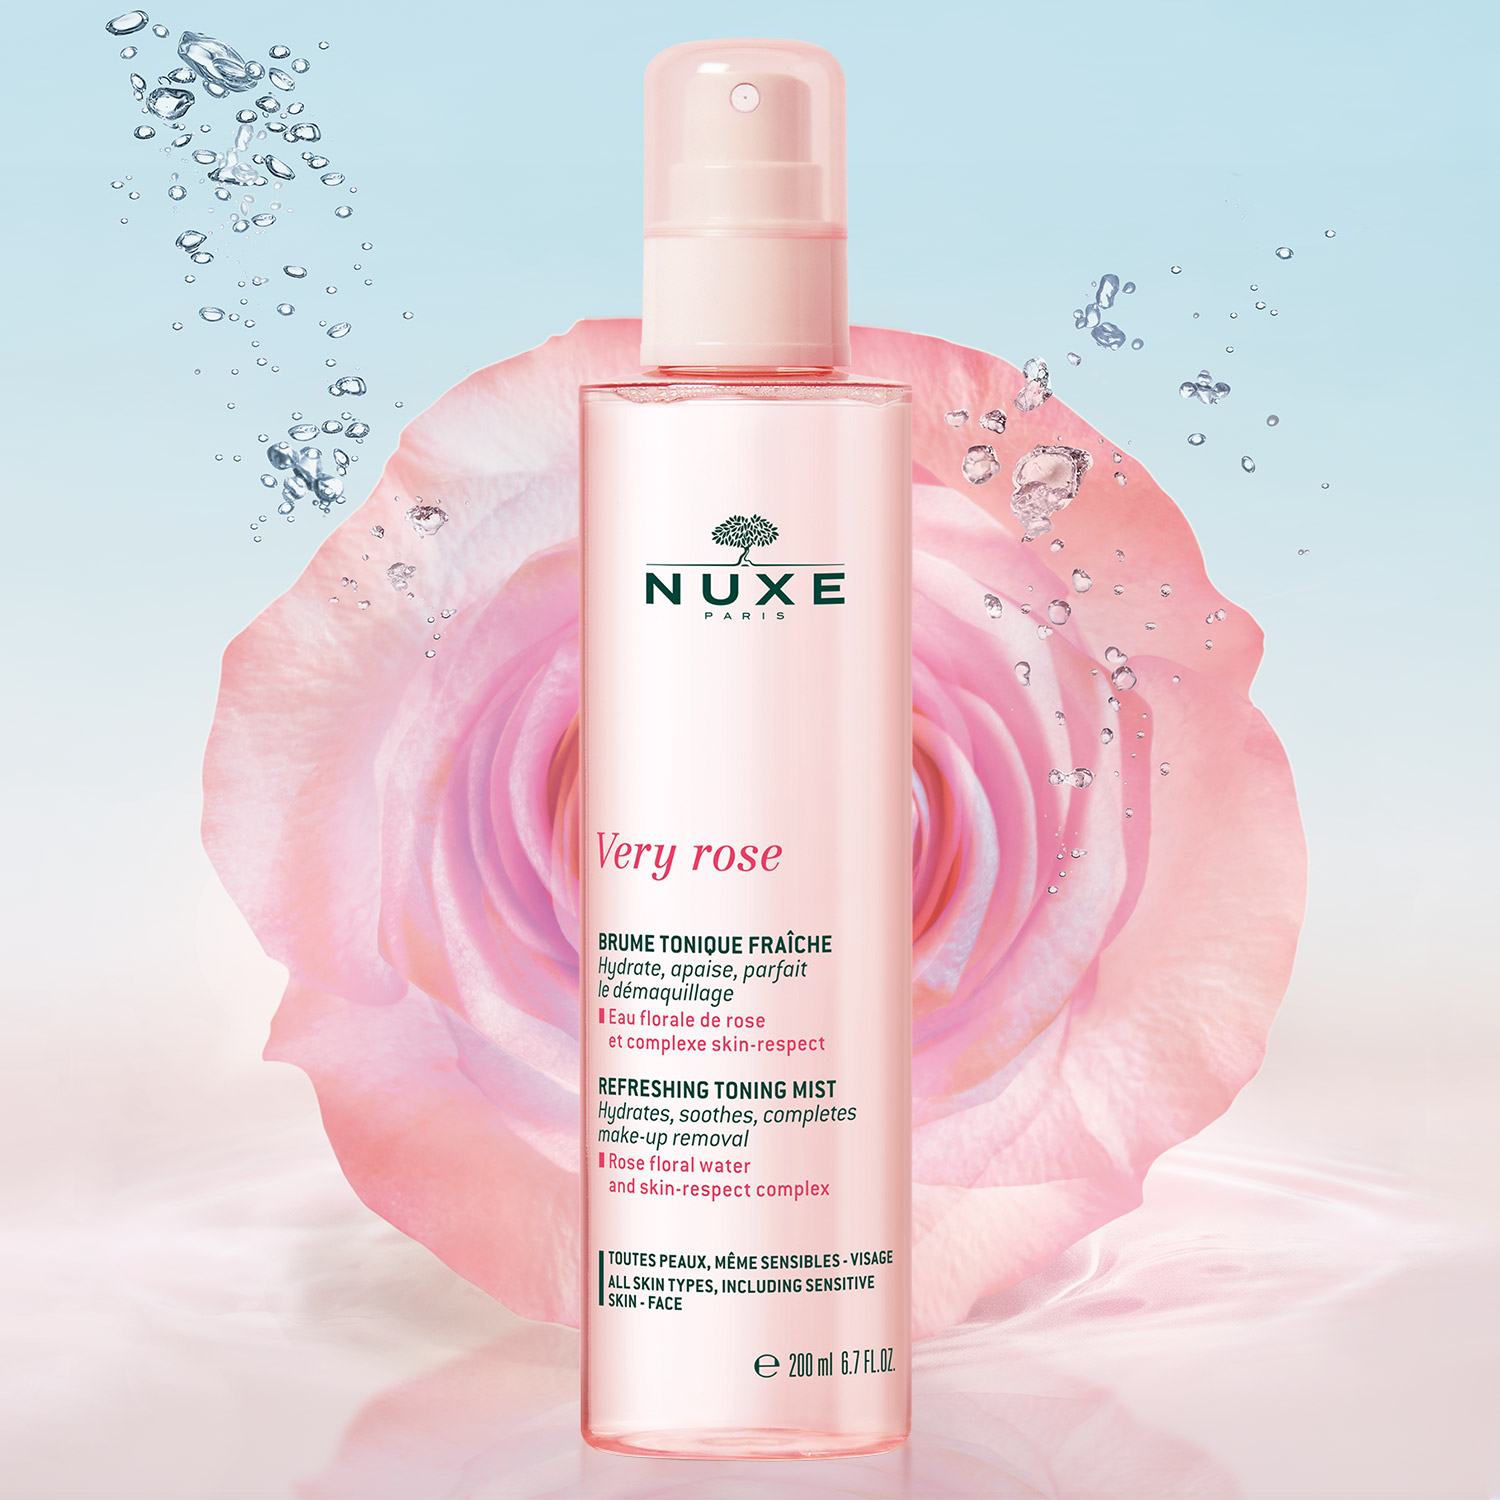 3264680022067-vn051901-fp_ls-nuxe-very_rose-huile_demaquillante-150ml-20208